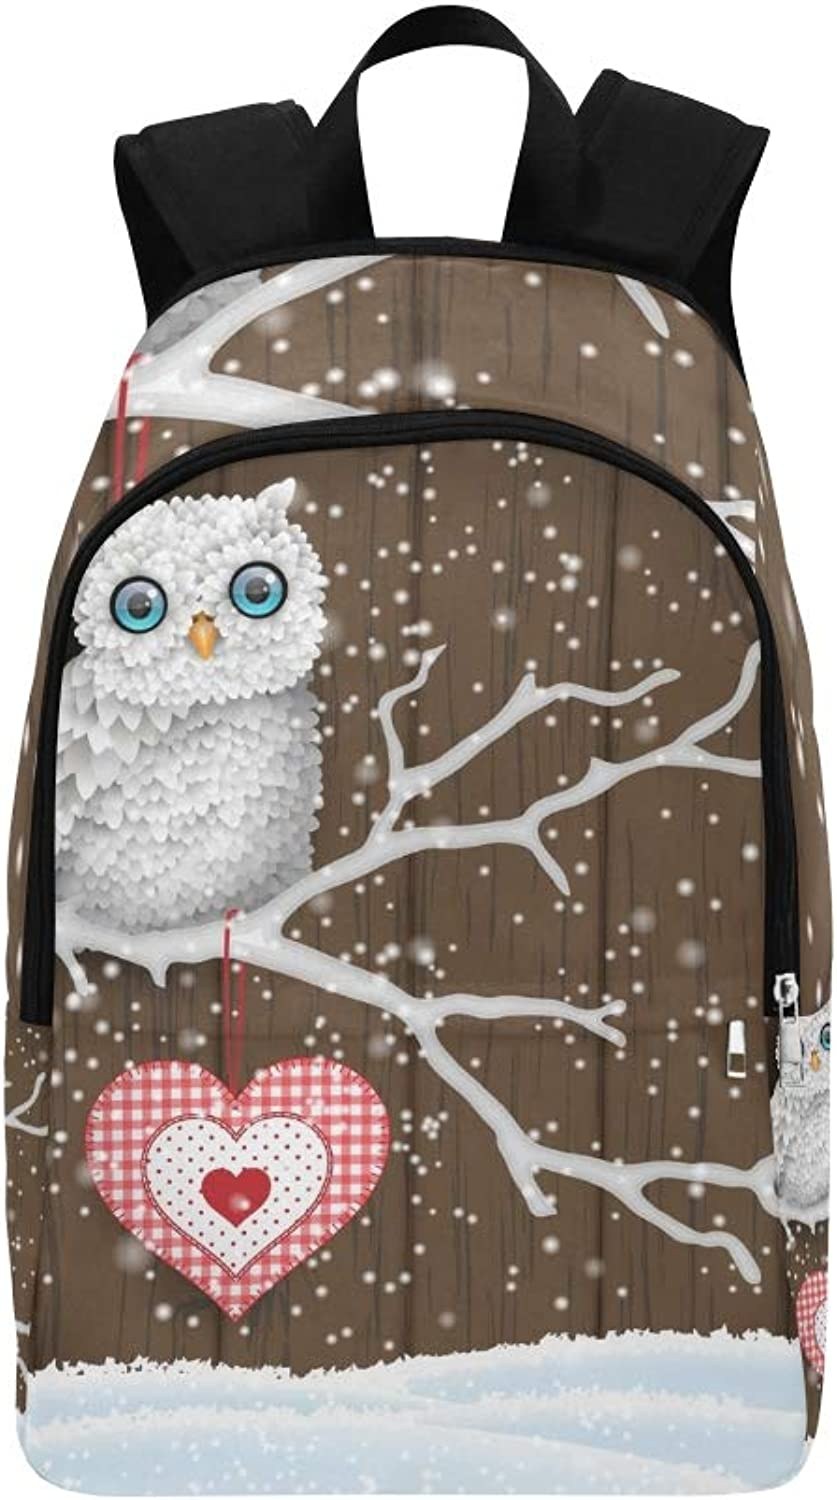 Christmas Motive Cute White Owl Sitting Casual Daypack Travel Bag College School Backpack for Mens and Women